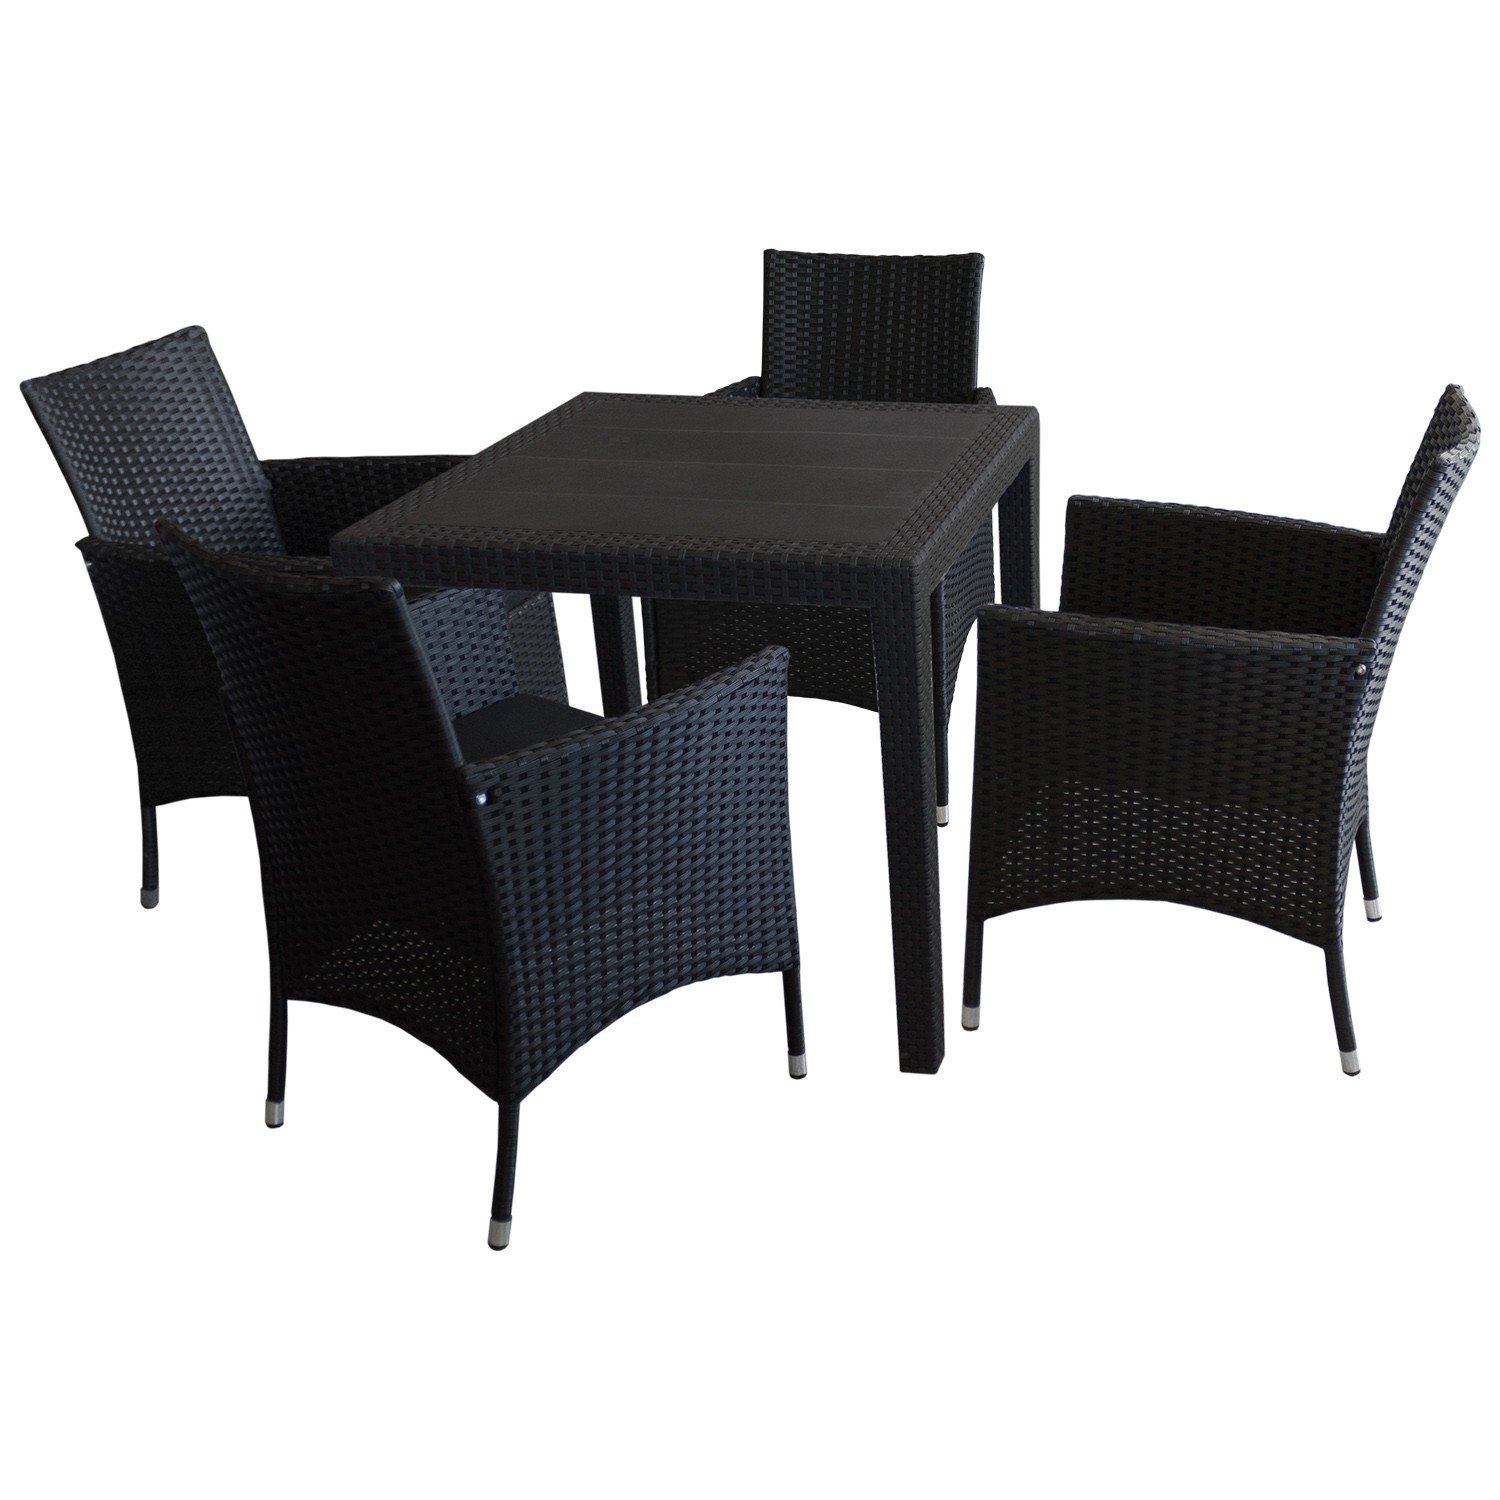 5tlg sitzgarnitur gartenm bel balkonm bel bistro set. Black Bedroom Furniture Sets. Home Design Ideas